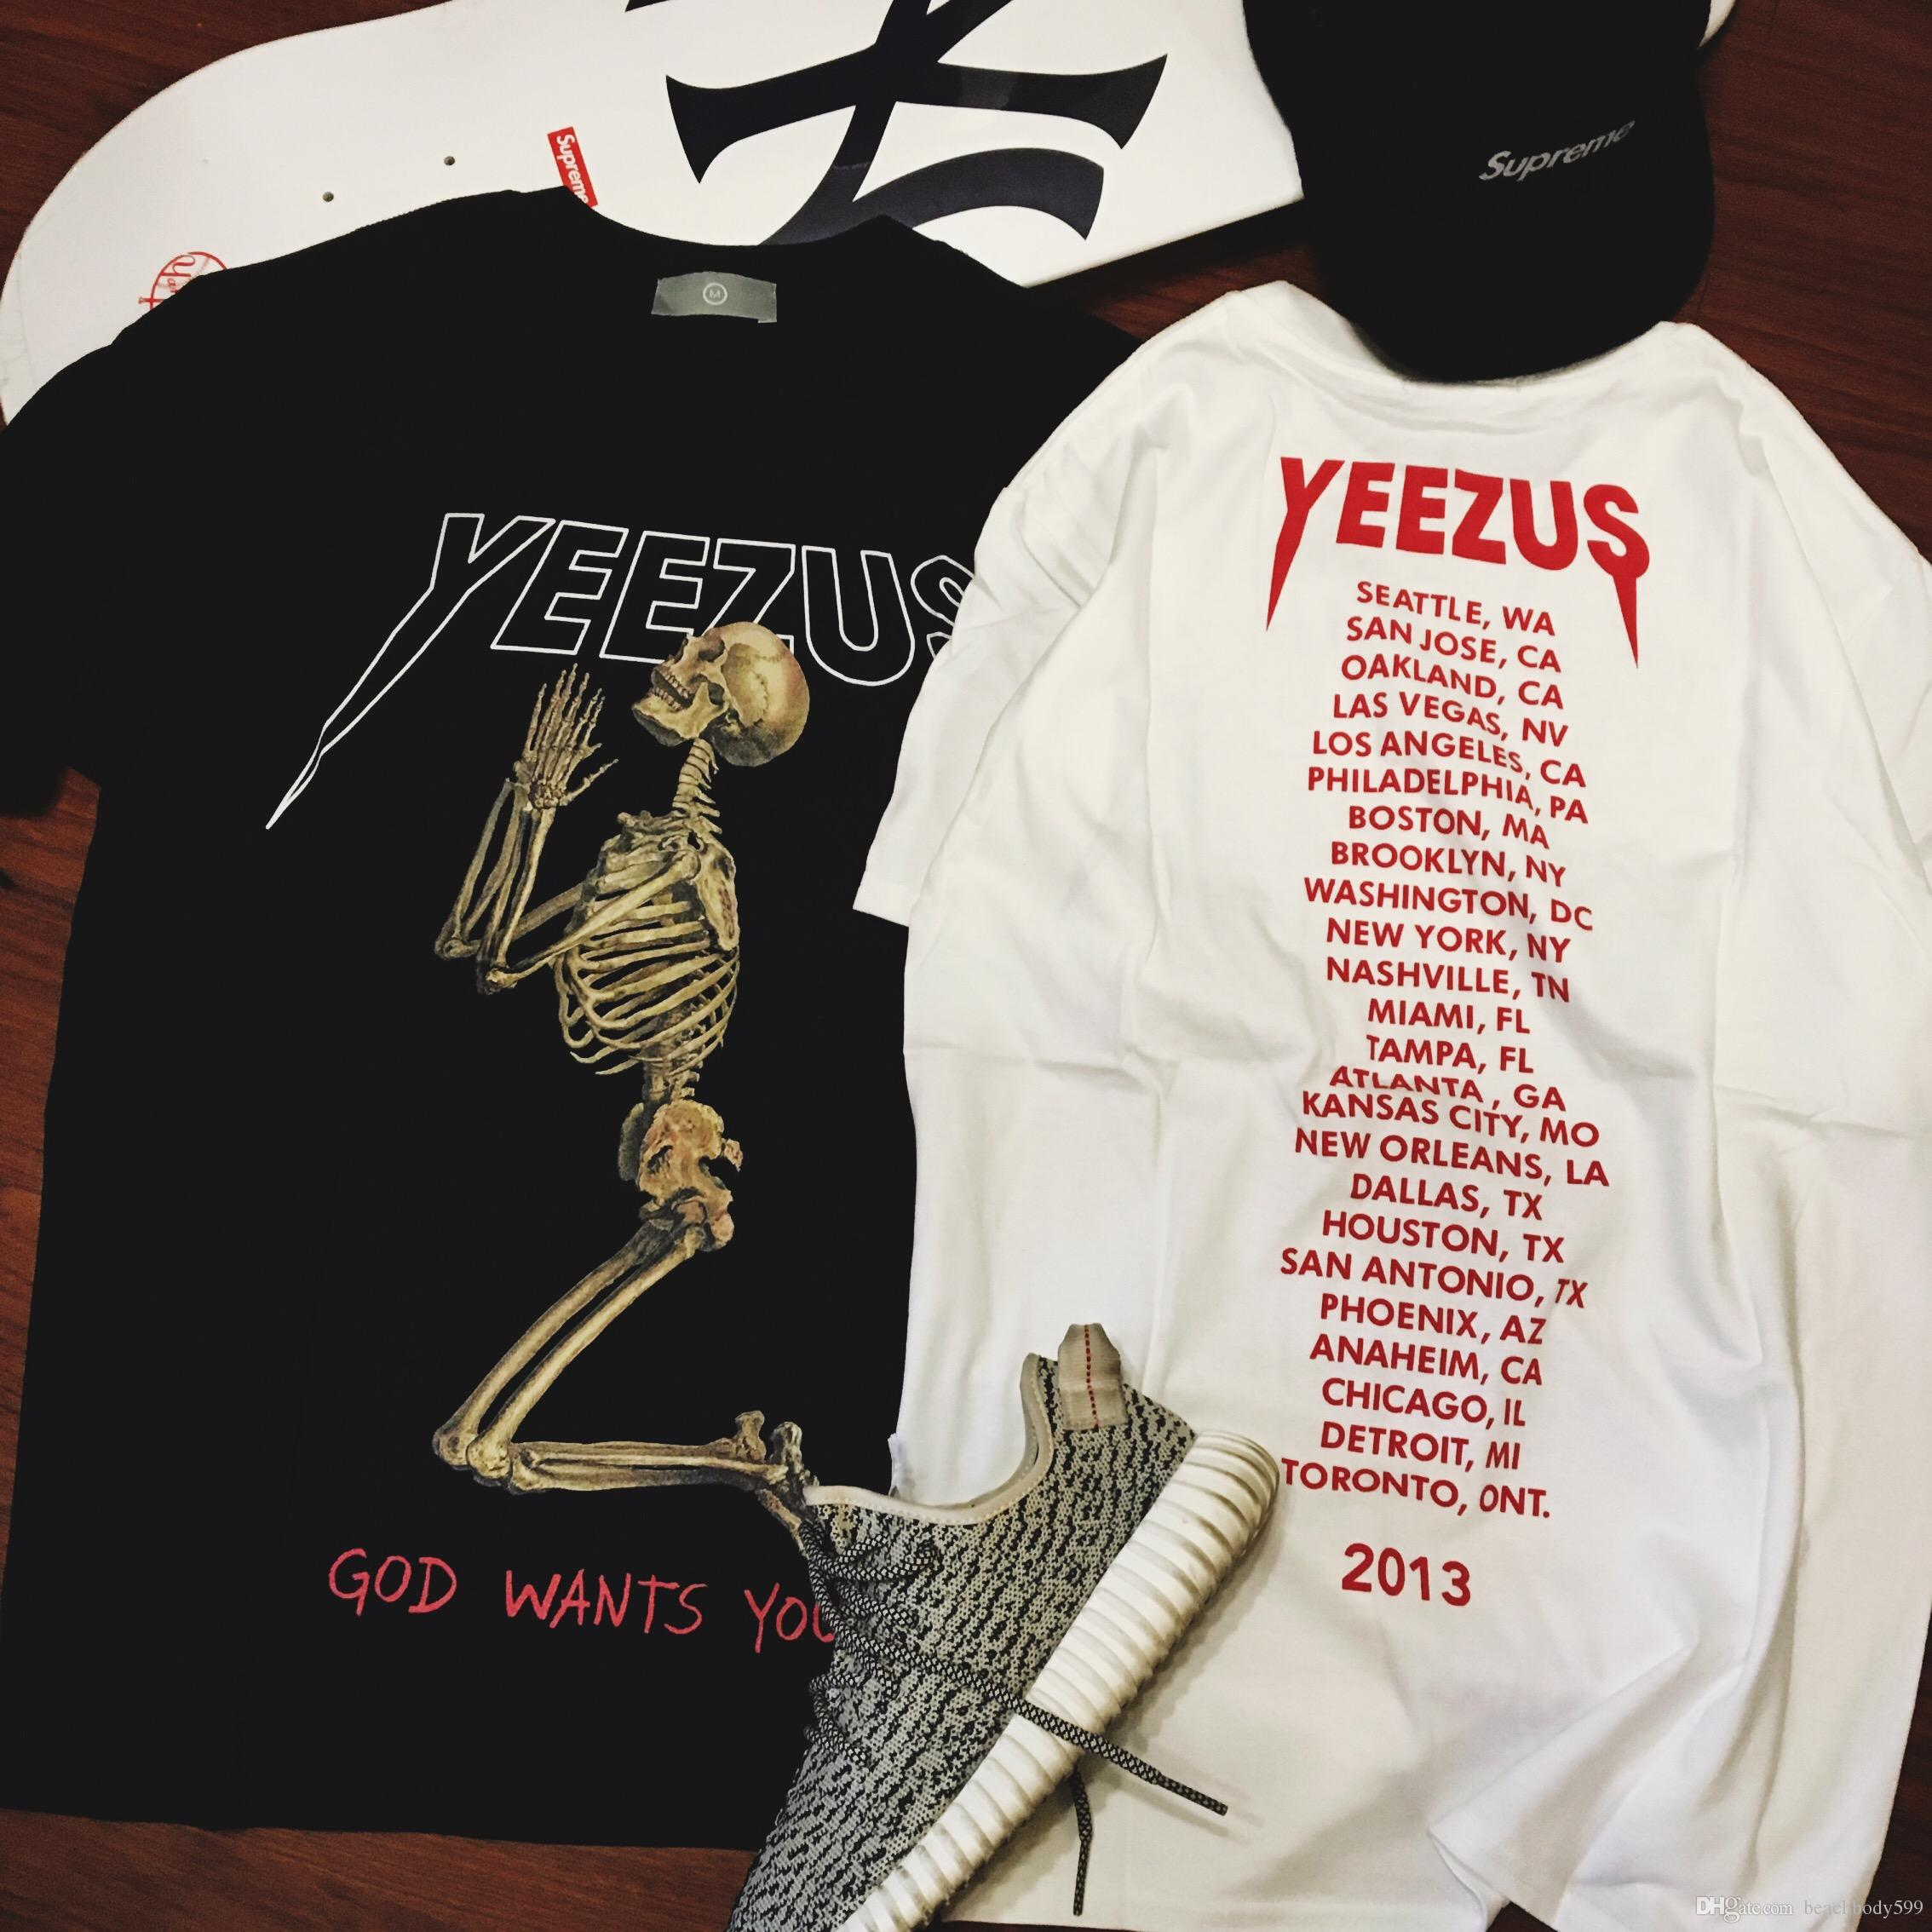 popular yeezus tour short sleeve t-Shirt skull ghost Merch Indian Headdress t shirt tee kanye west clothing cotton tee